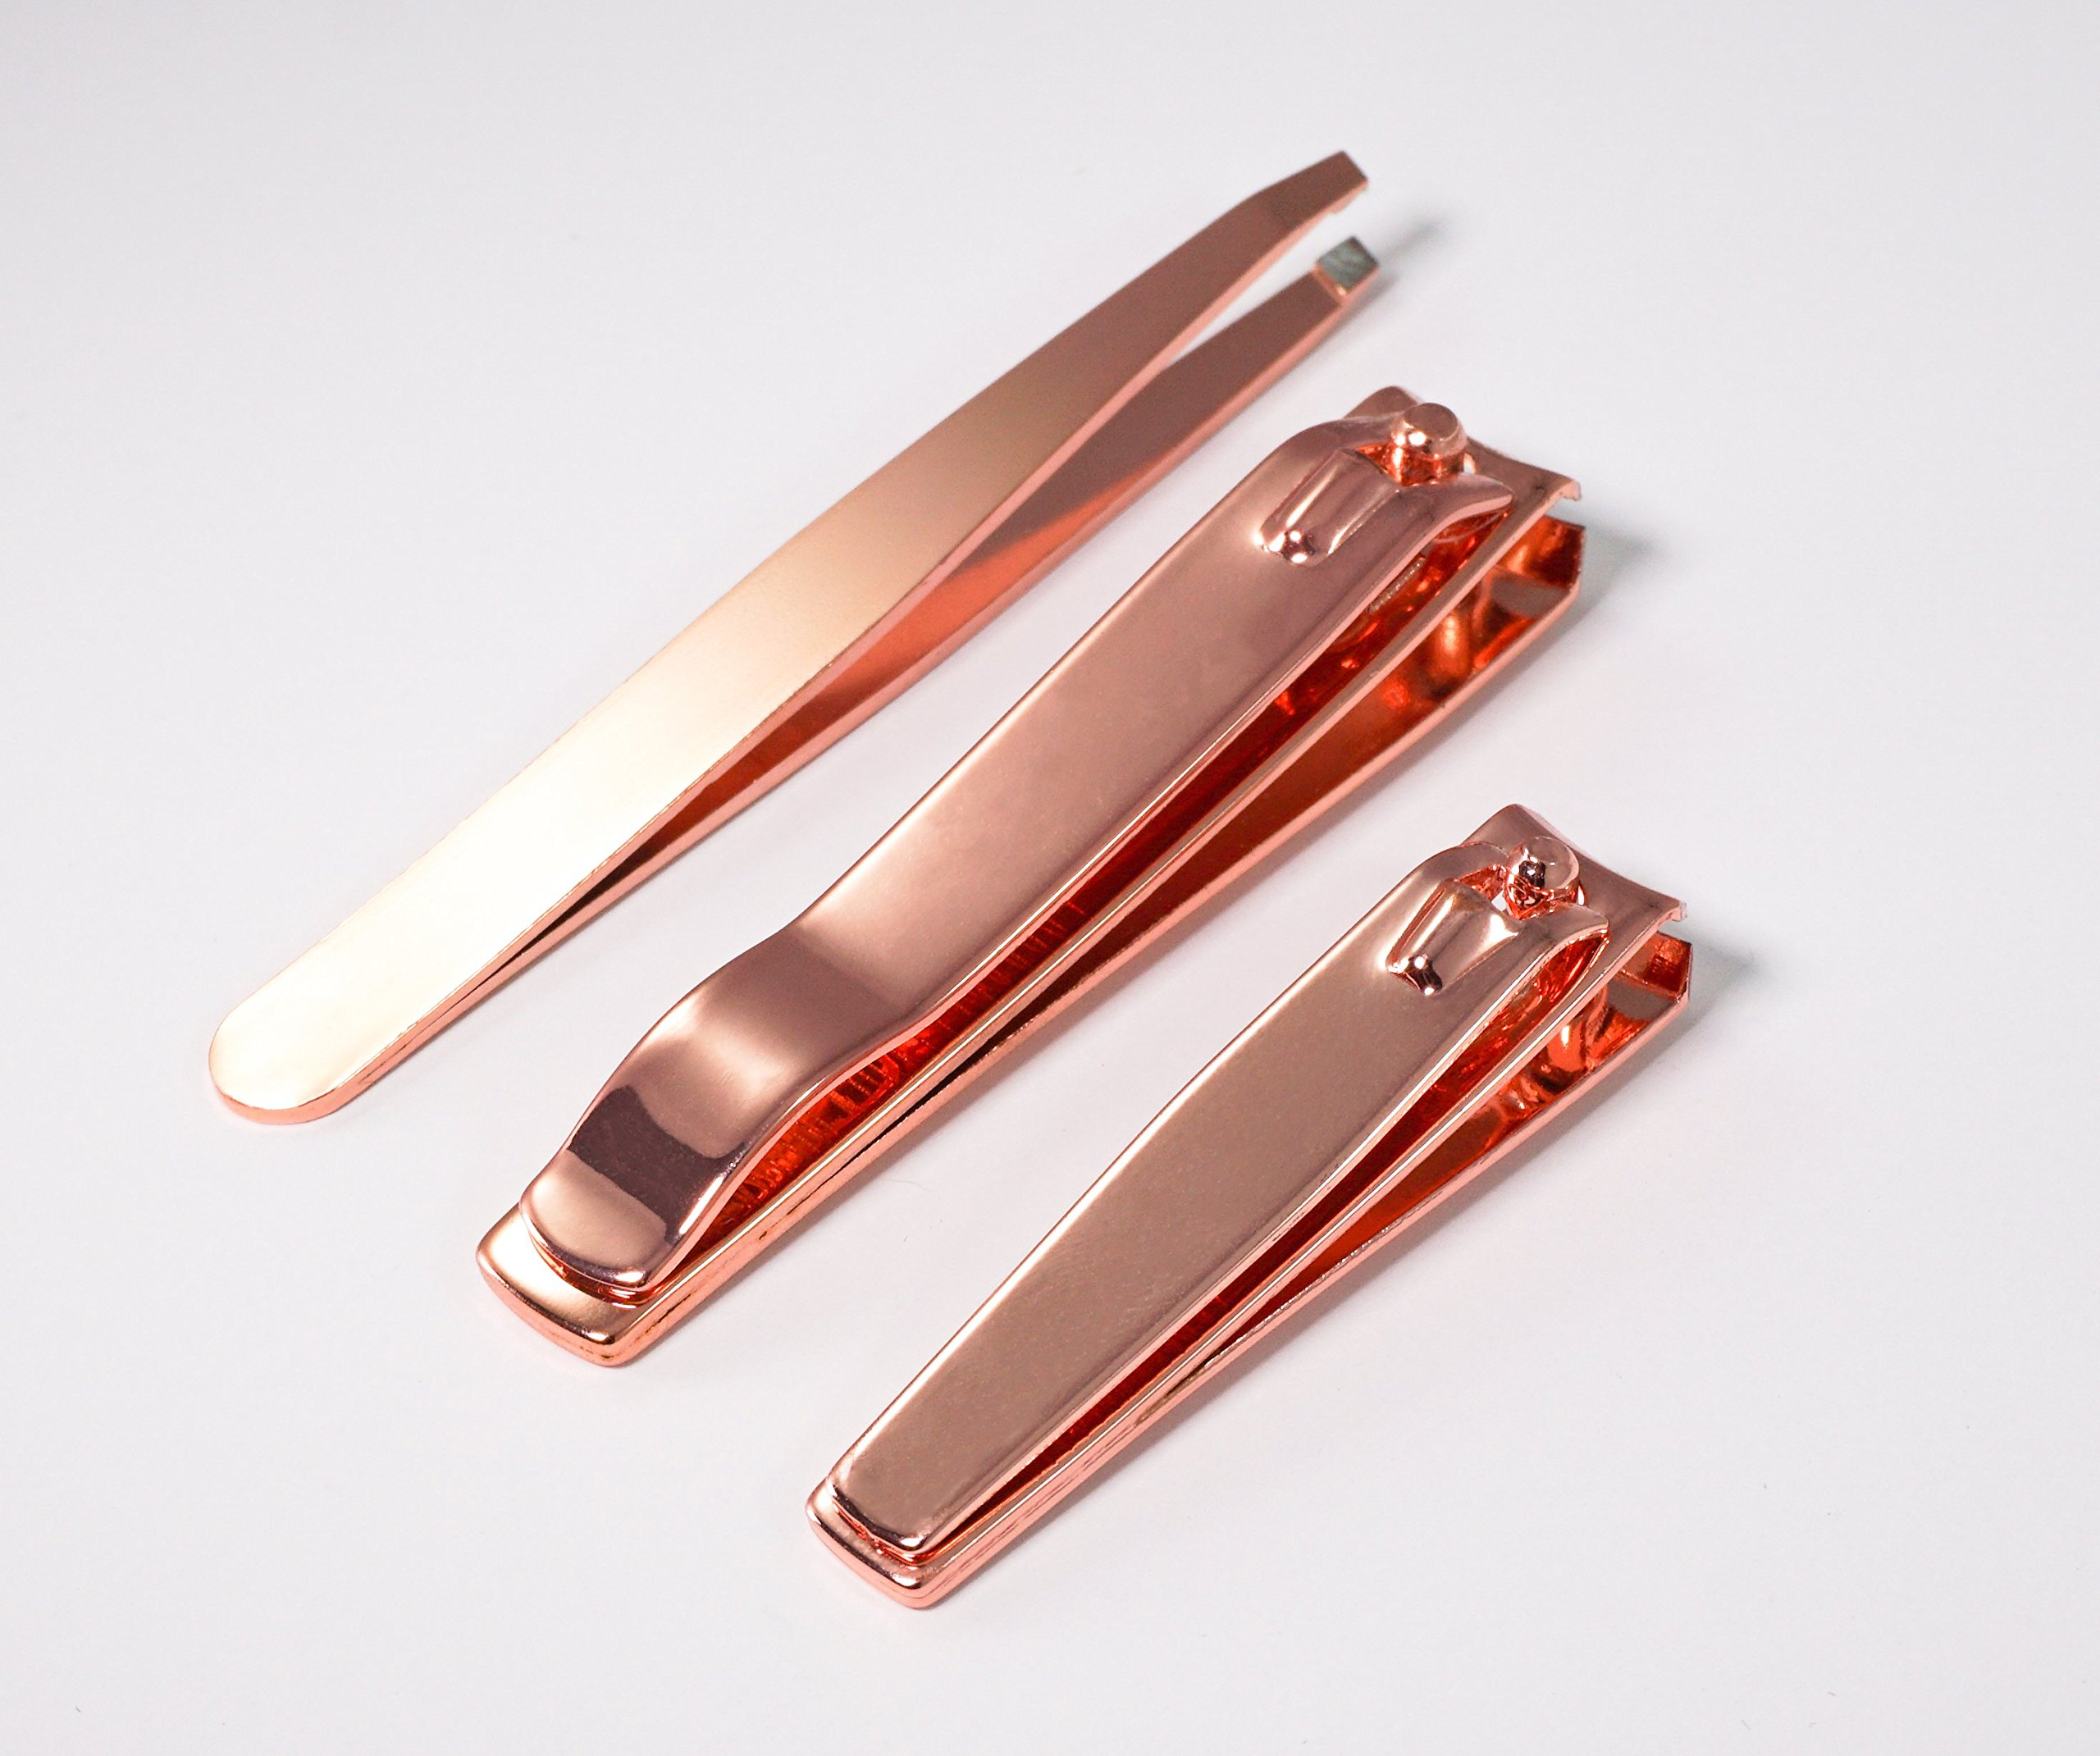 Lavenka Rose Gold Nail Clippers – Set of 3 Tools - Stainless Steel Fingernail and Toenail Clippers and FREE BONUS Precision Tweezers - For Women and Men – Leather Case Included